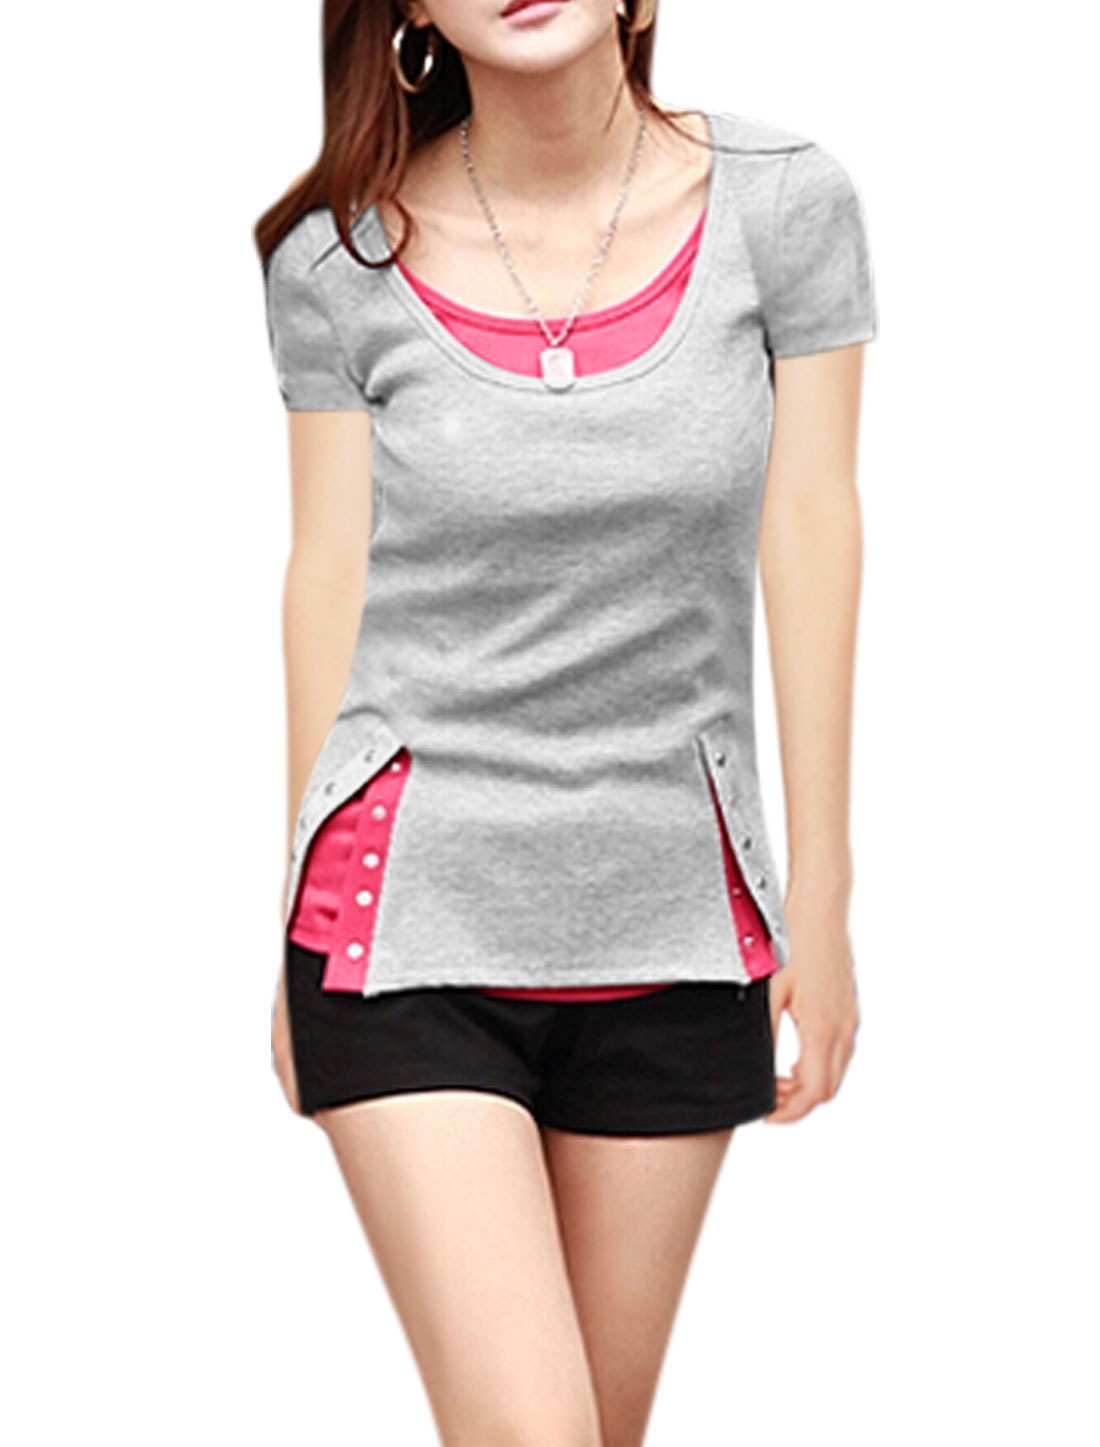 Women Short Sleeves Snap Fastener Up Sides Casual Tops Gray S